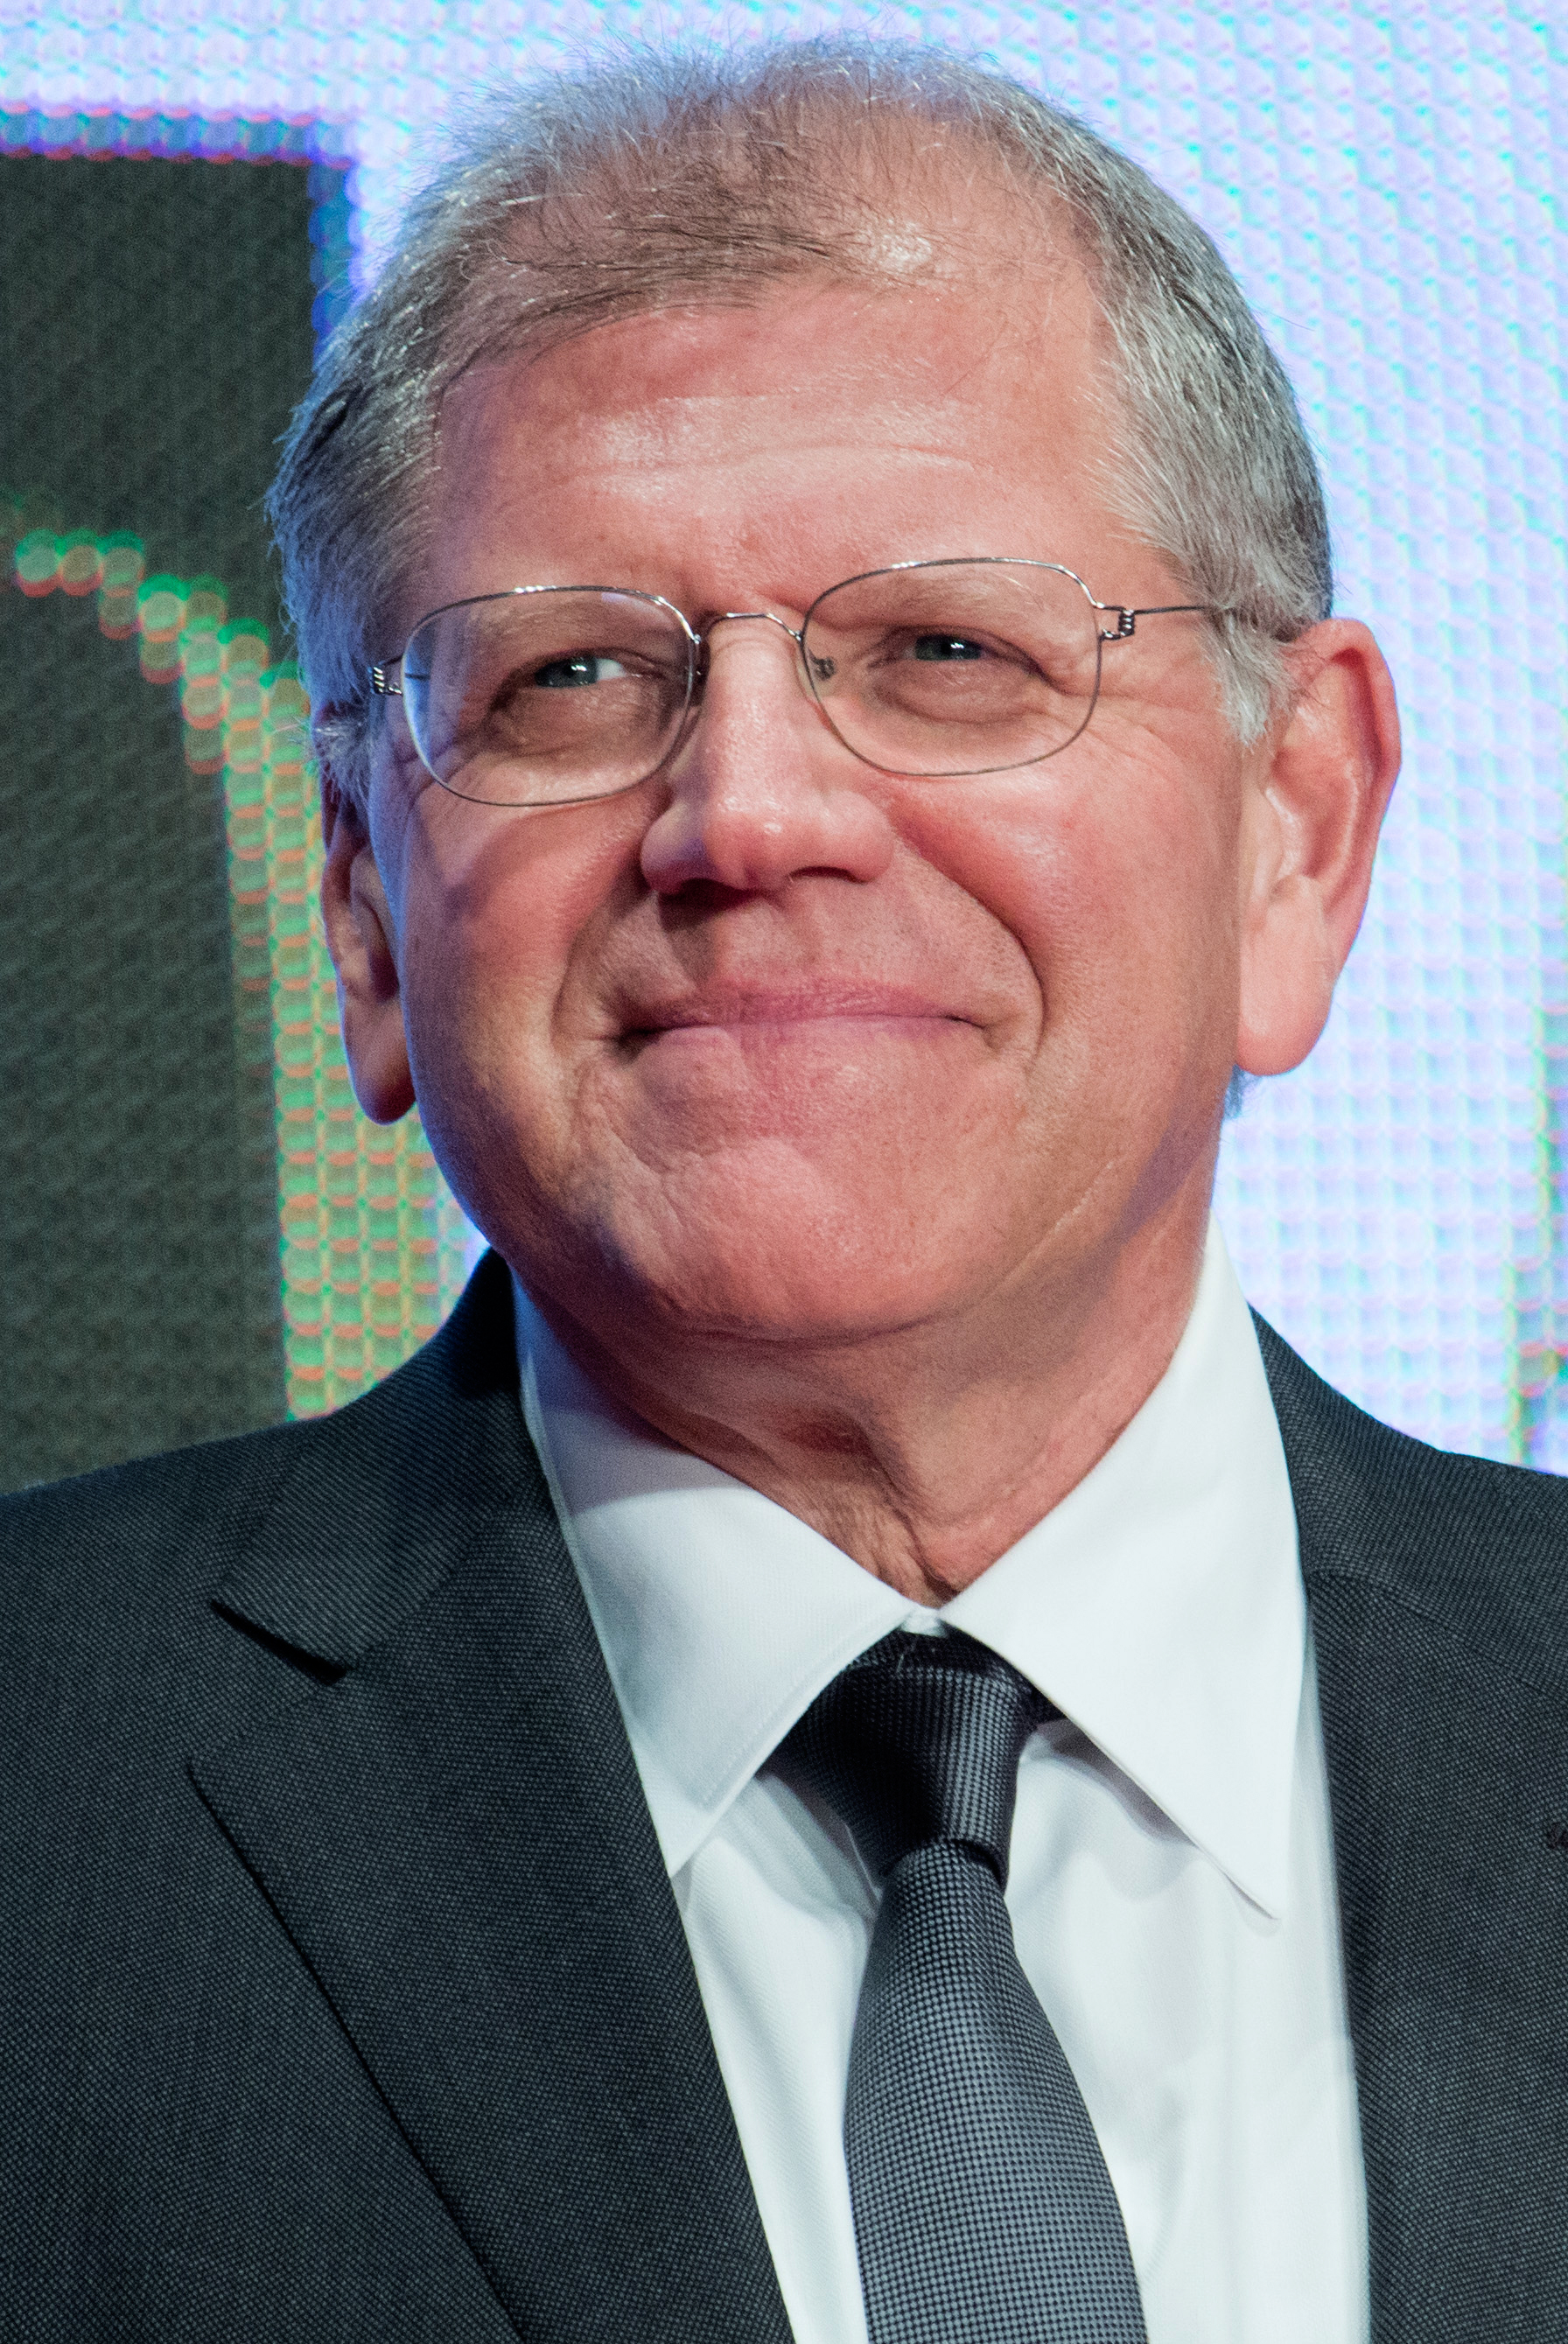 The 66-year old son of father Alphonse Zemeckis and mother Rose Zemeckis Robert Zemeckis in 2018 photo. Robert Zemeckis earned a  million dollar salary - leaving the net worth at 50 million in 2018